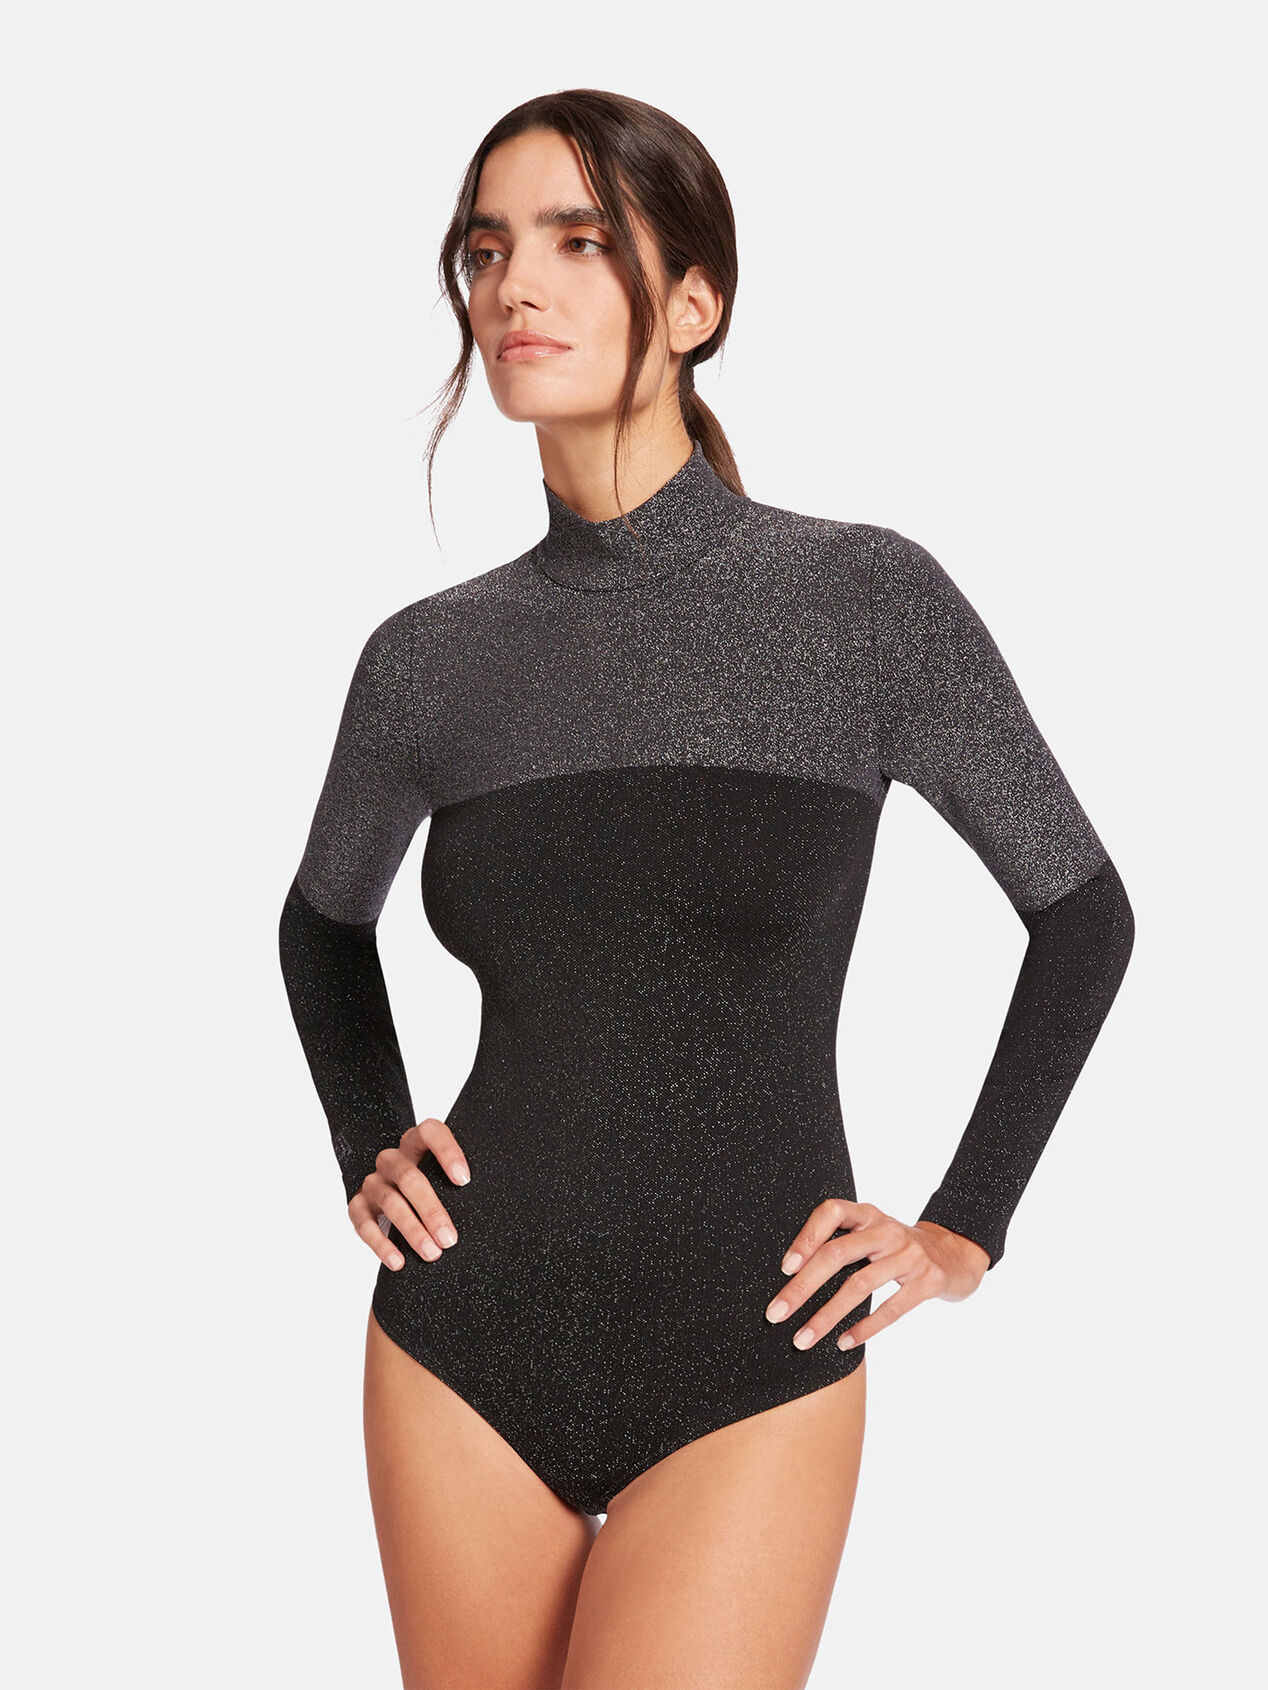 Wolford: Up to 50% off Select Styles